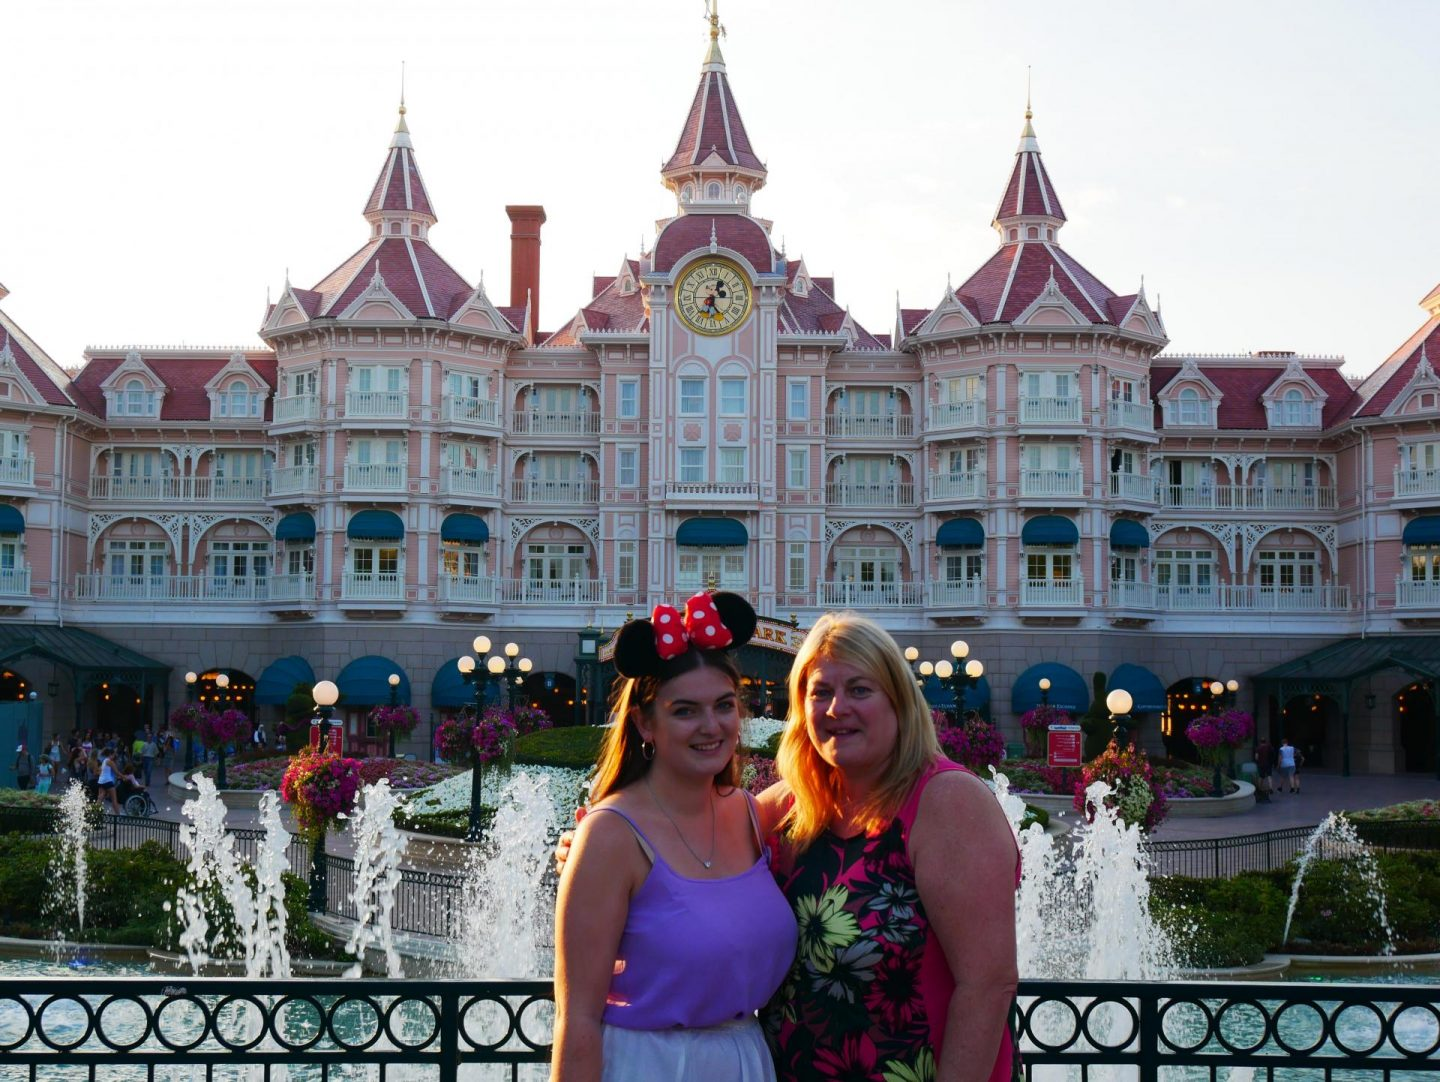 disneyland-paris-my-22nd-birthday-trip-rachel-nicole-uk-travel-disney-blogger-10